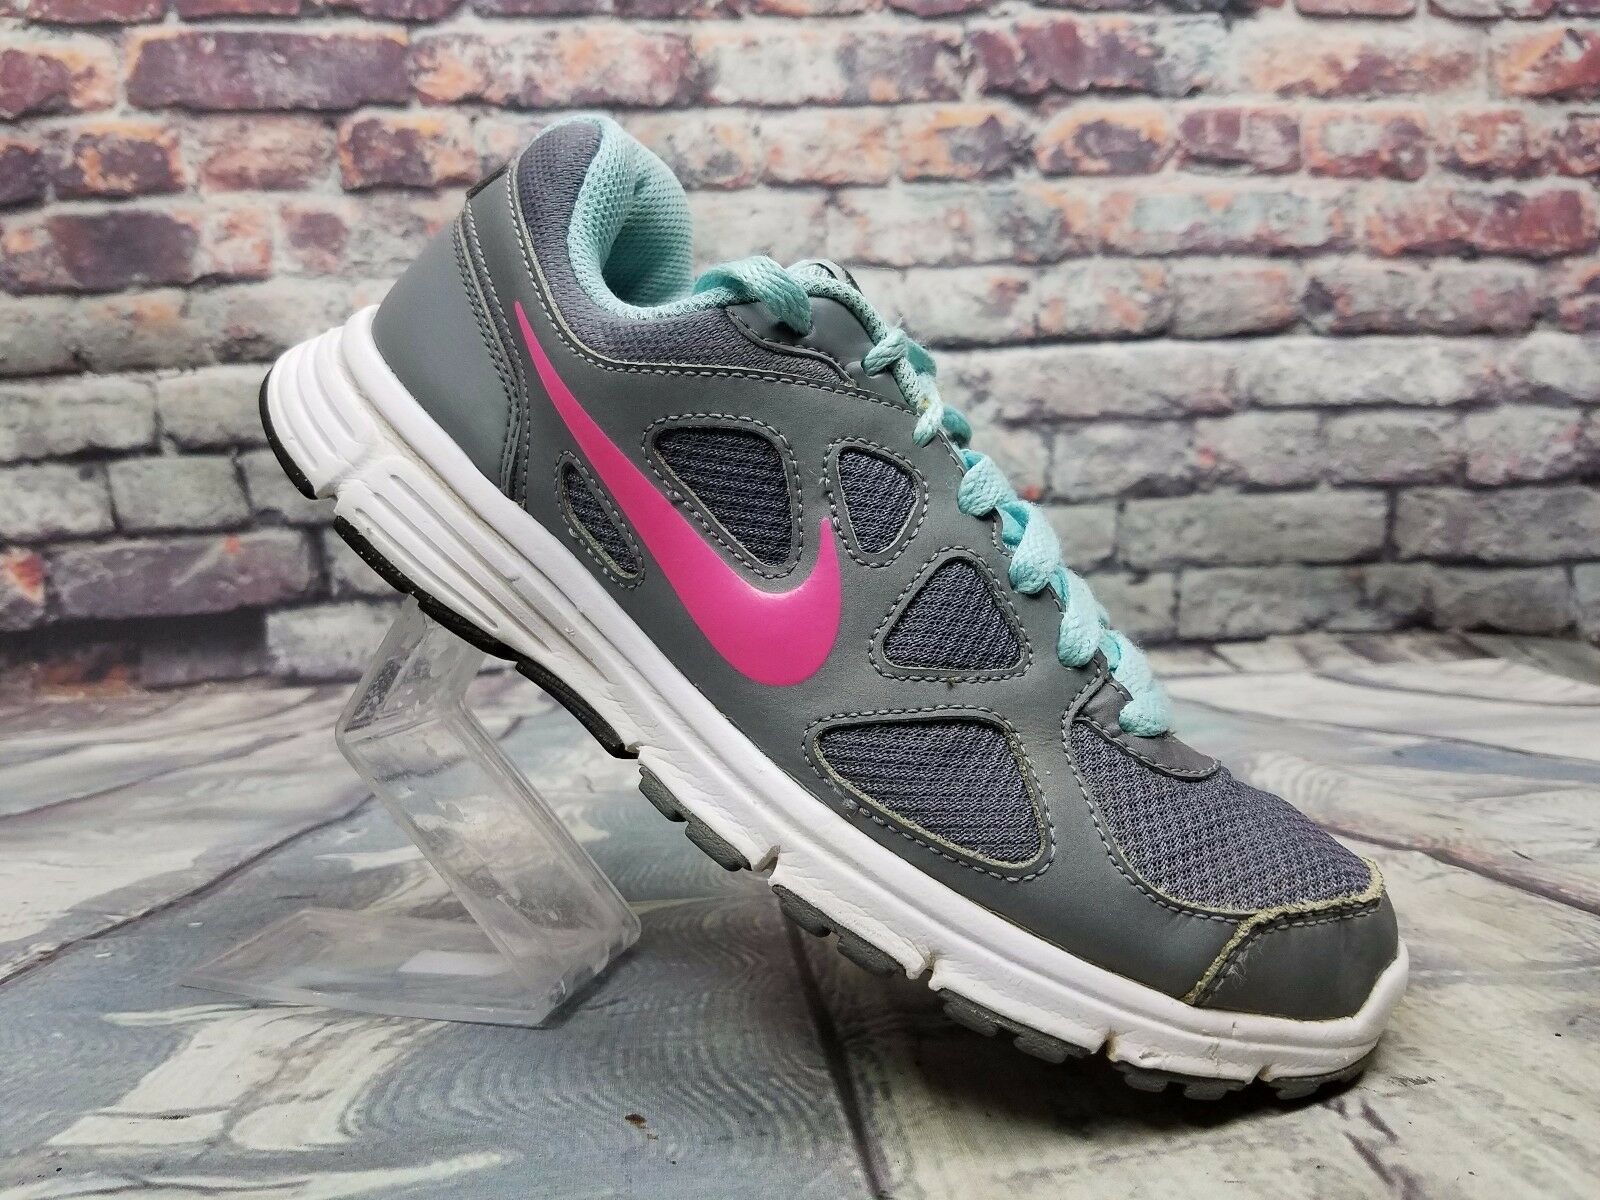 Women NIKE 488148-002 REVOLUTION 488148-002 NIKE Athletic running shoes Gray/ blue / pink Sz 8.5 366675